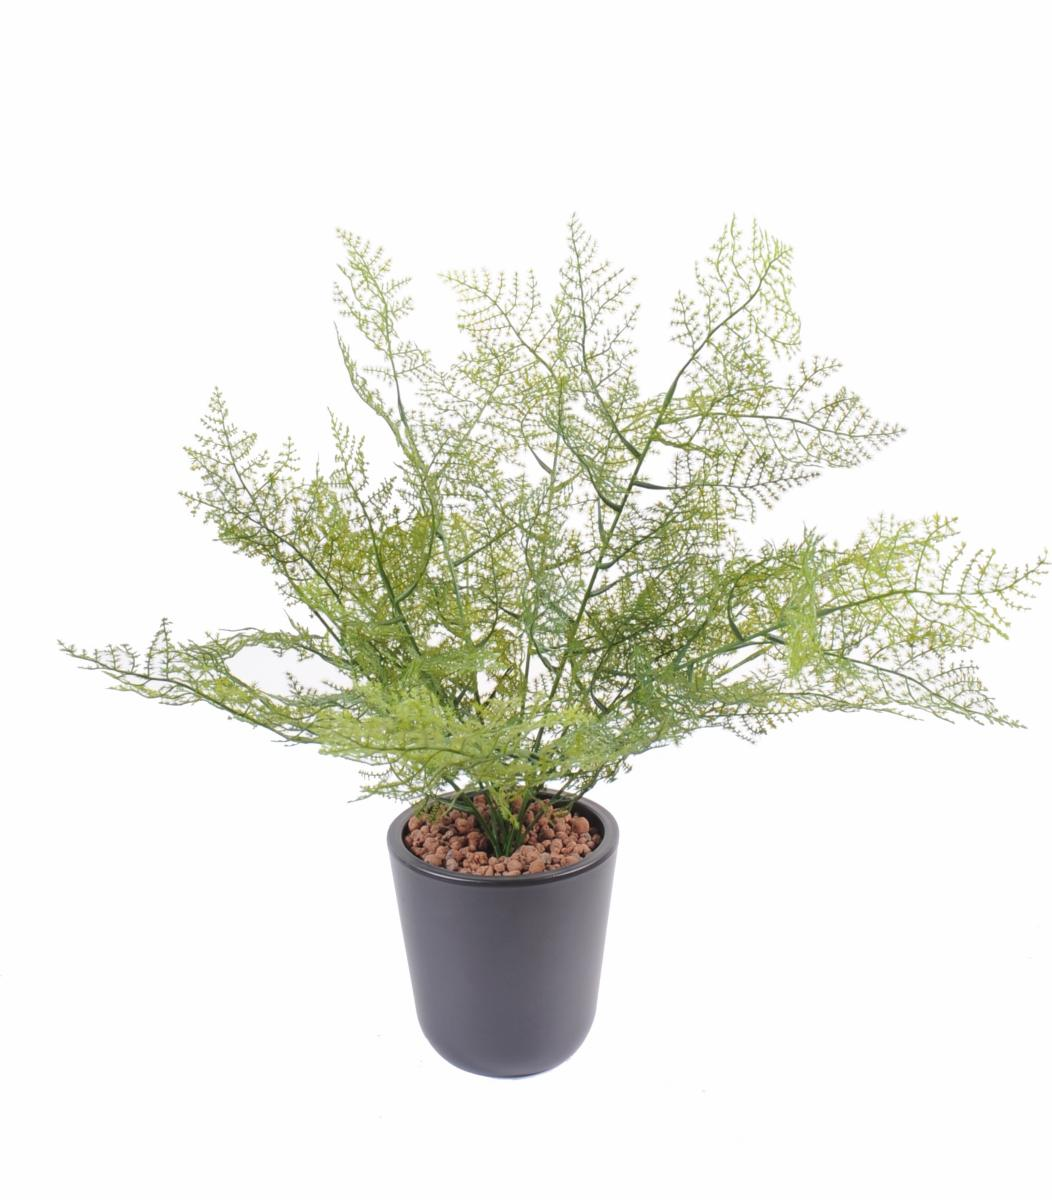 Plante artificielle asparagus plastique int rieur for Plantes ornement exterieur